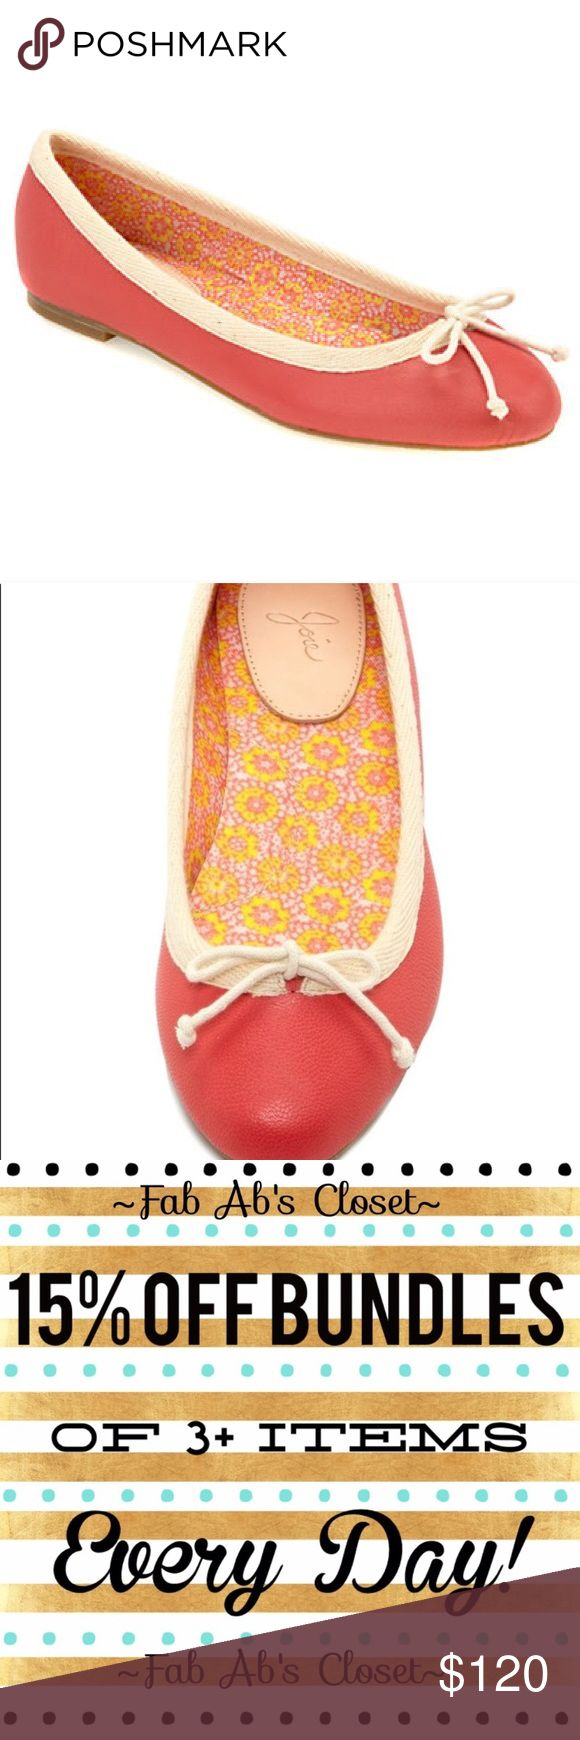 Joie Lighthouse Ballet Flats Super cute coral and cream ballet leather flats with cream bow on toe. like new condition! Euro size 40.👗Fab Ab's Closet; Re-Styled Resale 👗 🎀15% OFF 3+ ITEM BUNDLES🎀 👉🏻PLEASE USE OFFER BUTTON👈🏻 ❌NO PP, TRADES, HOLDS❌  🛍ITEMS ALWAYS 100% AUTHENTIC🛍 👑SUGGESTED USER👑 Joie Shoes Flats & Loafers